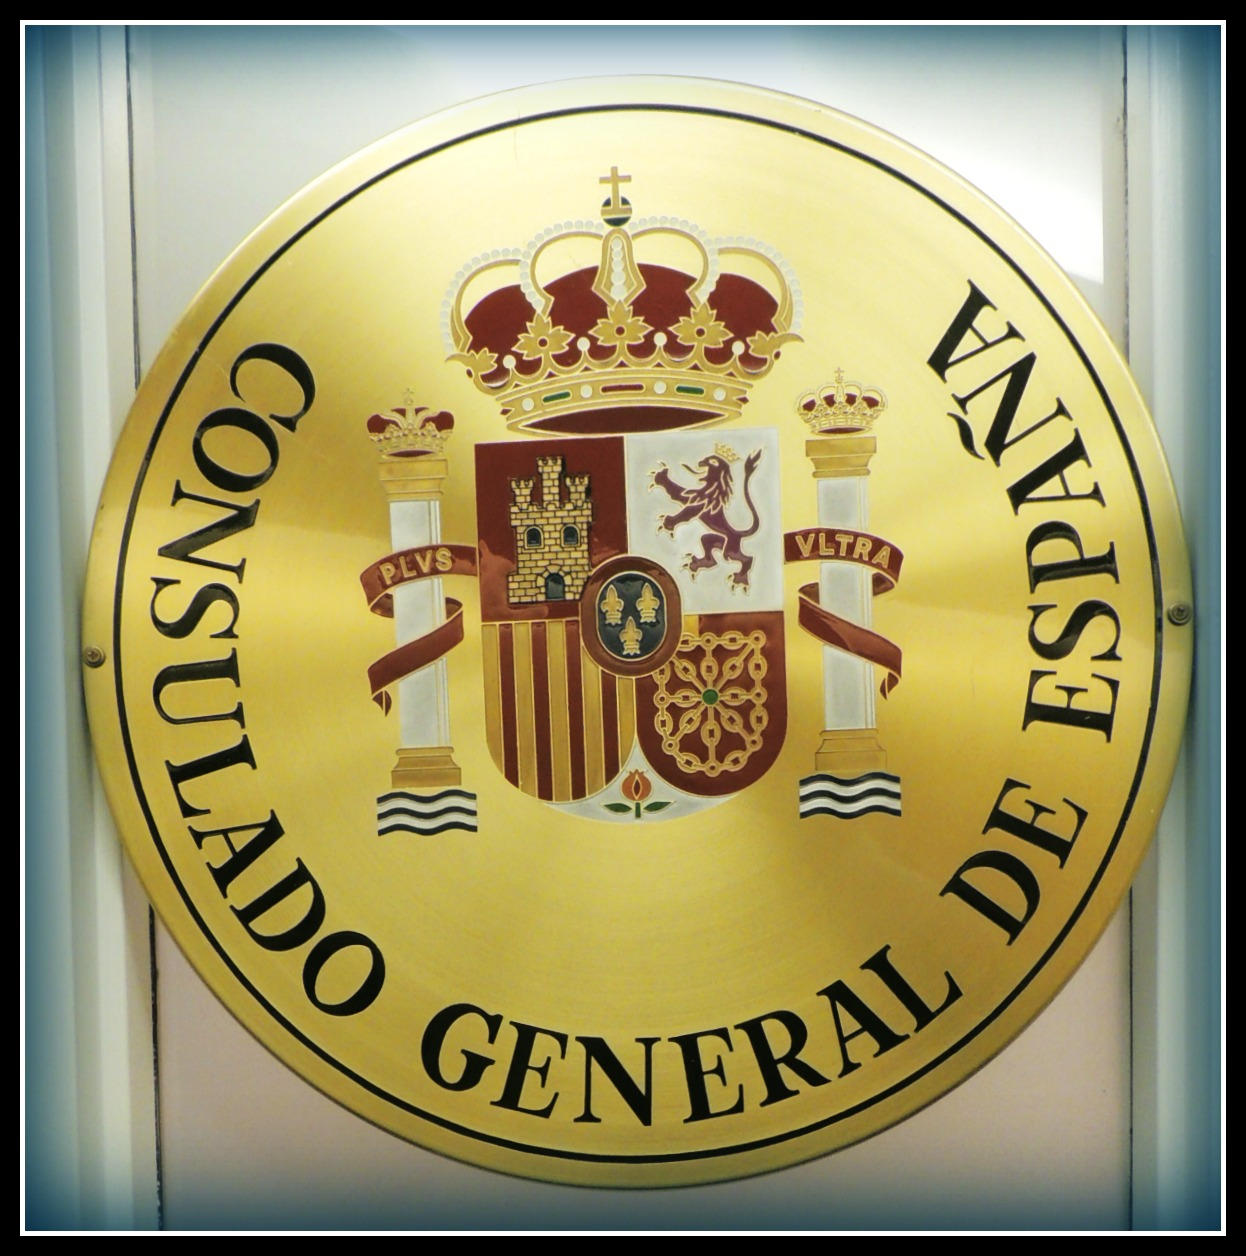 Consulado general de espa a en boston - Embaja de espana ...